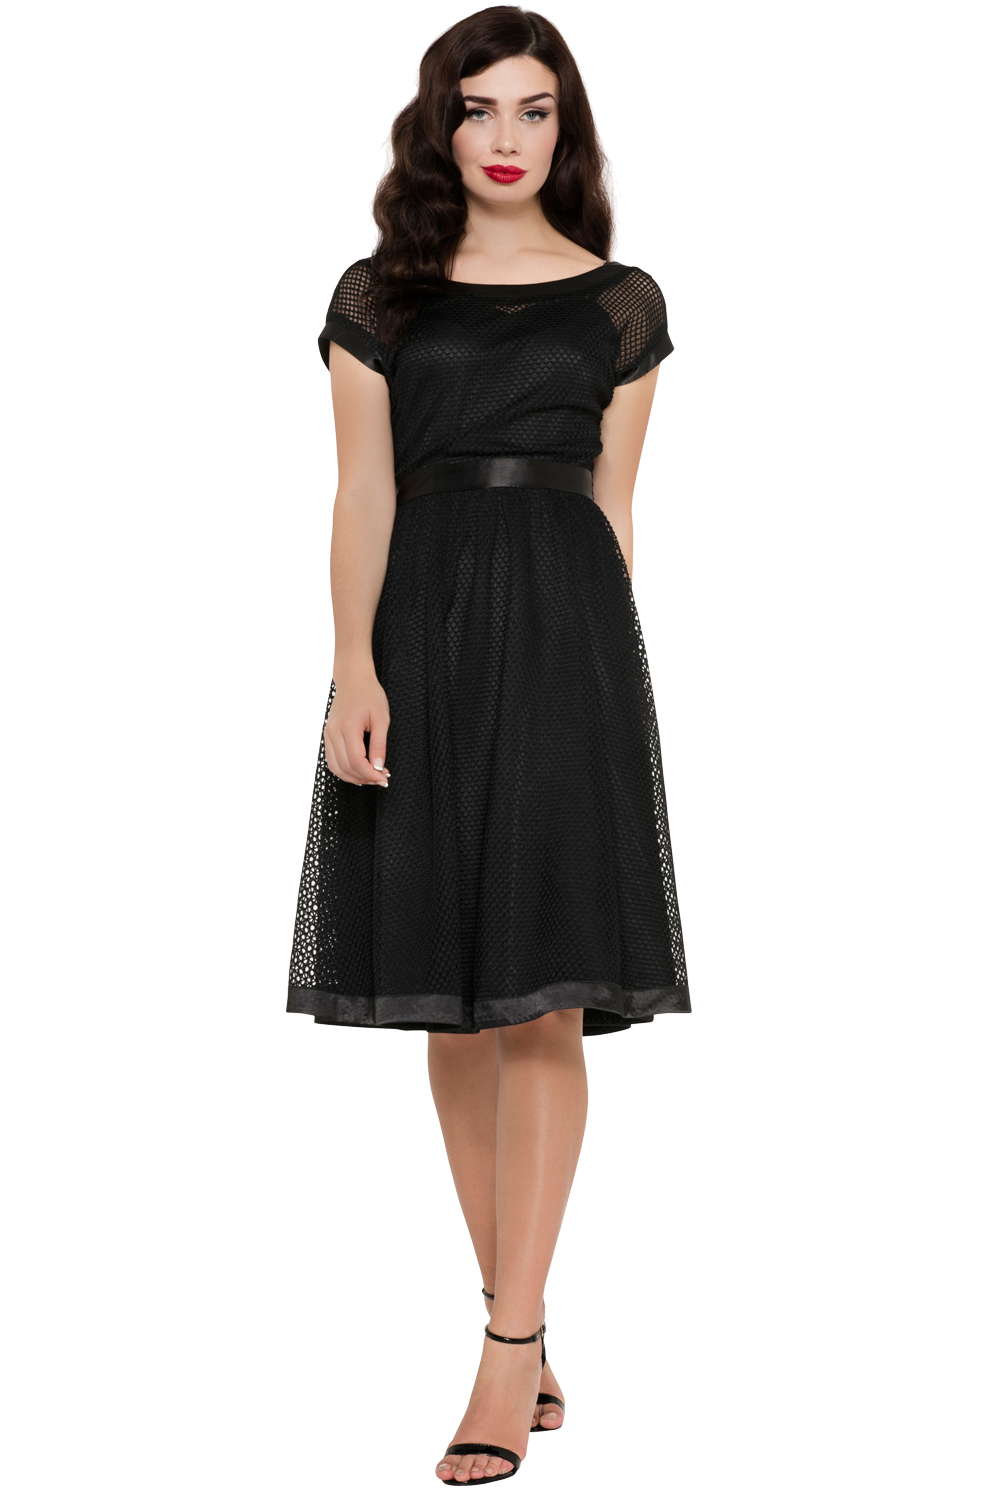 Voodoo Vixen Raye Swing Dress